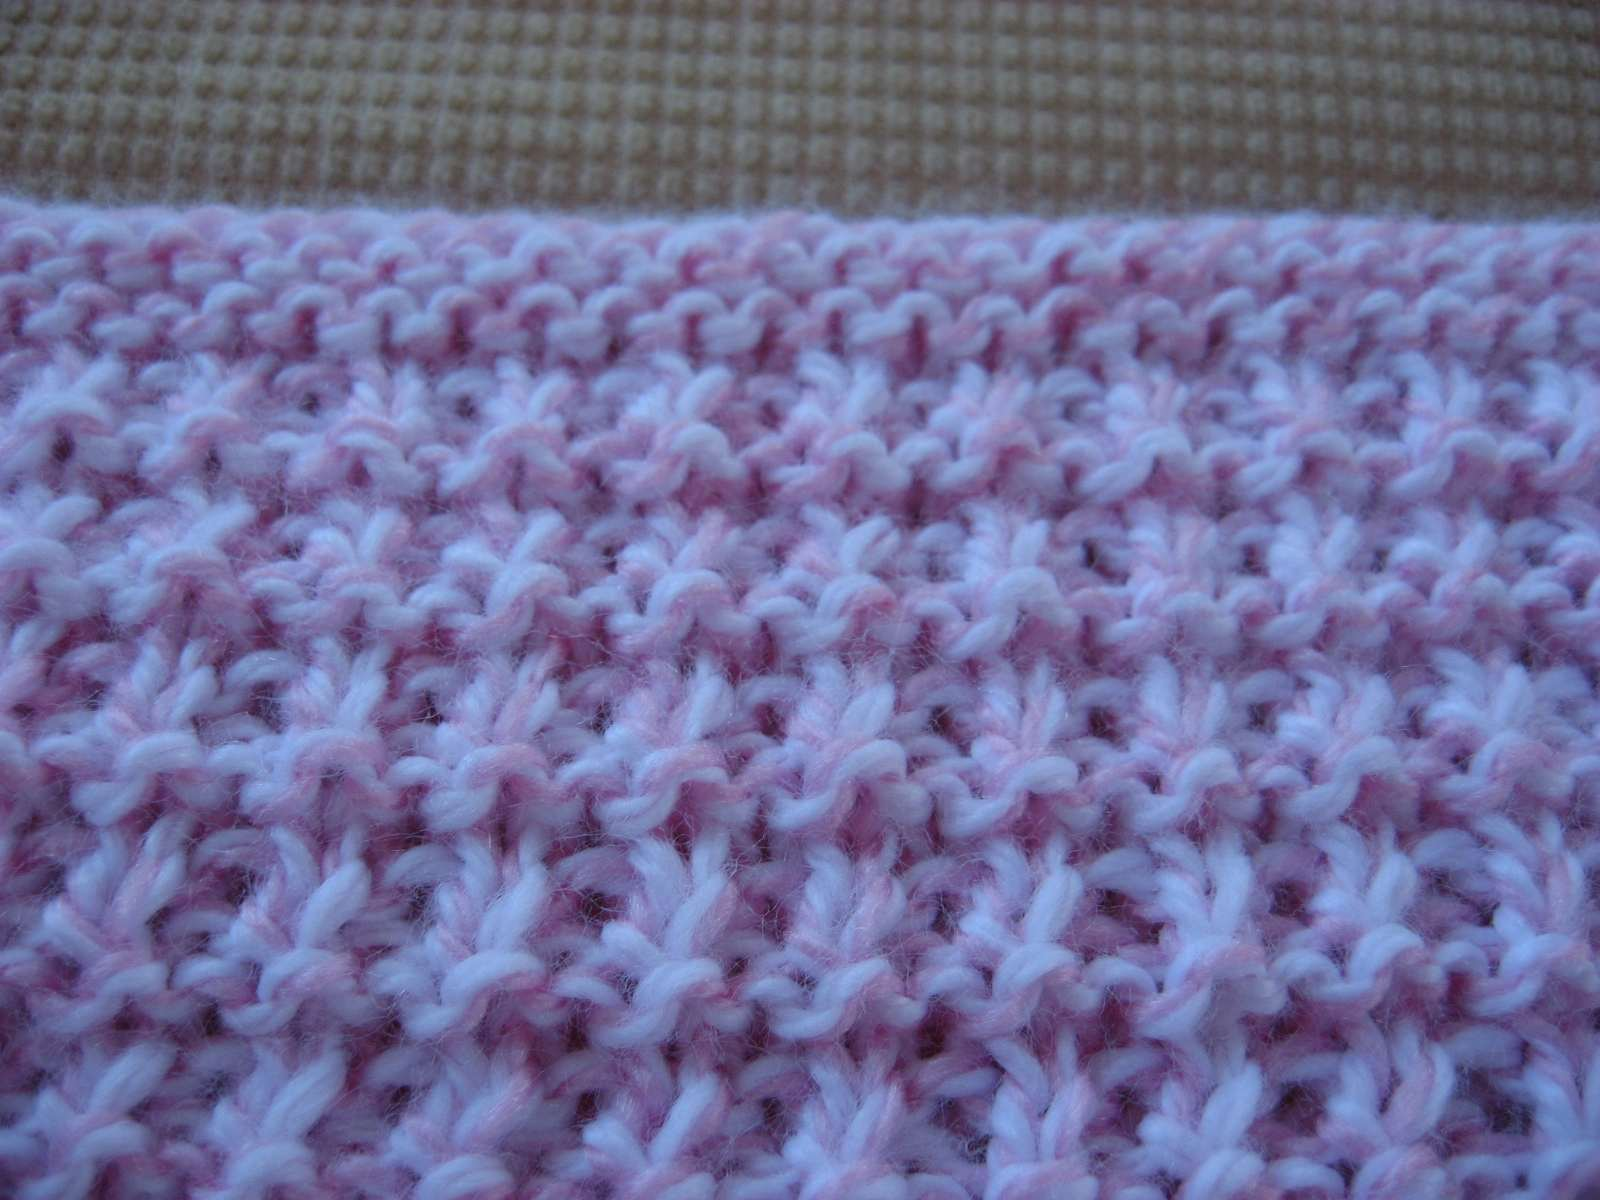 Knitting Pictures Stitches : Stitches knitting gallery